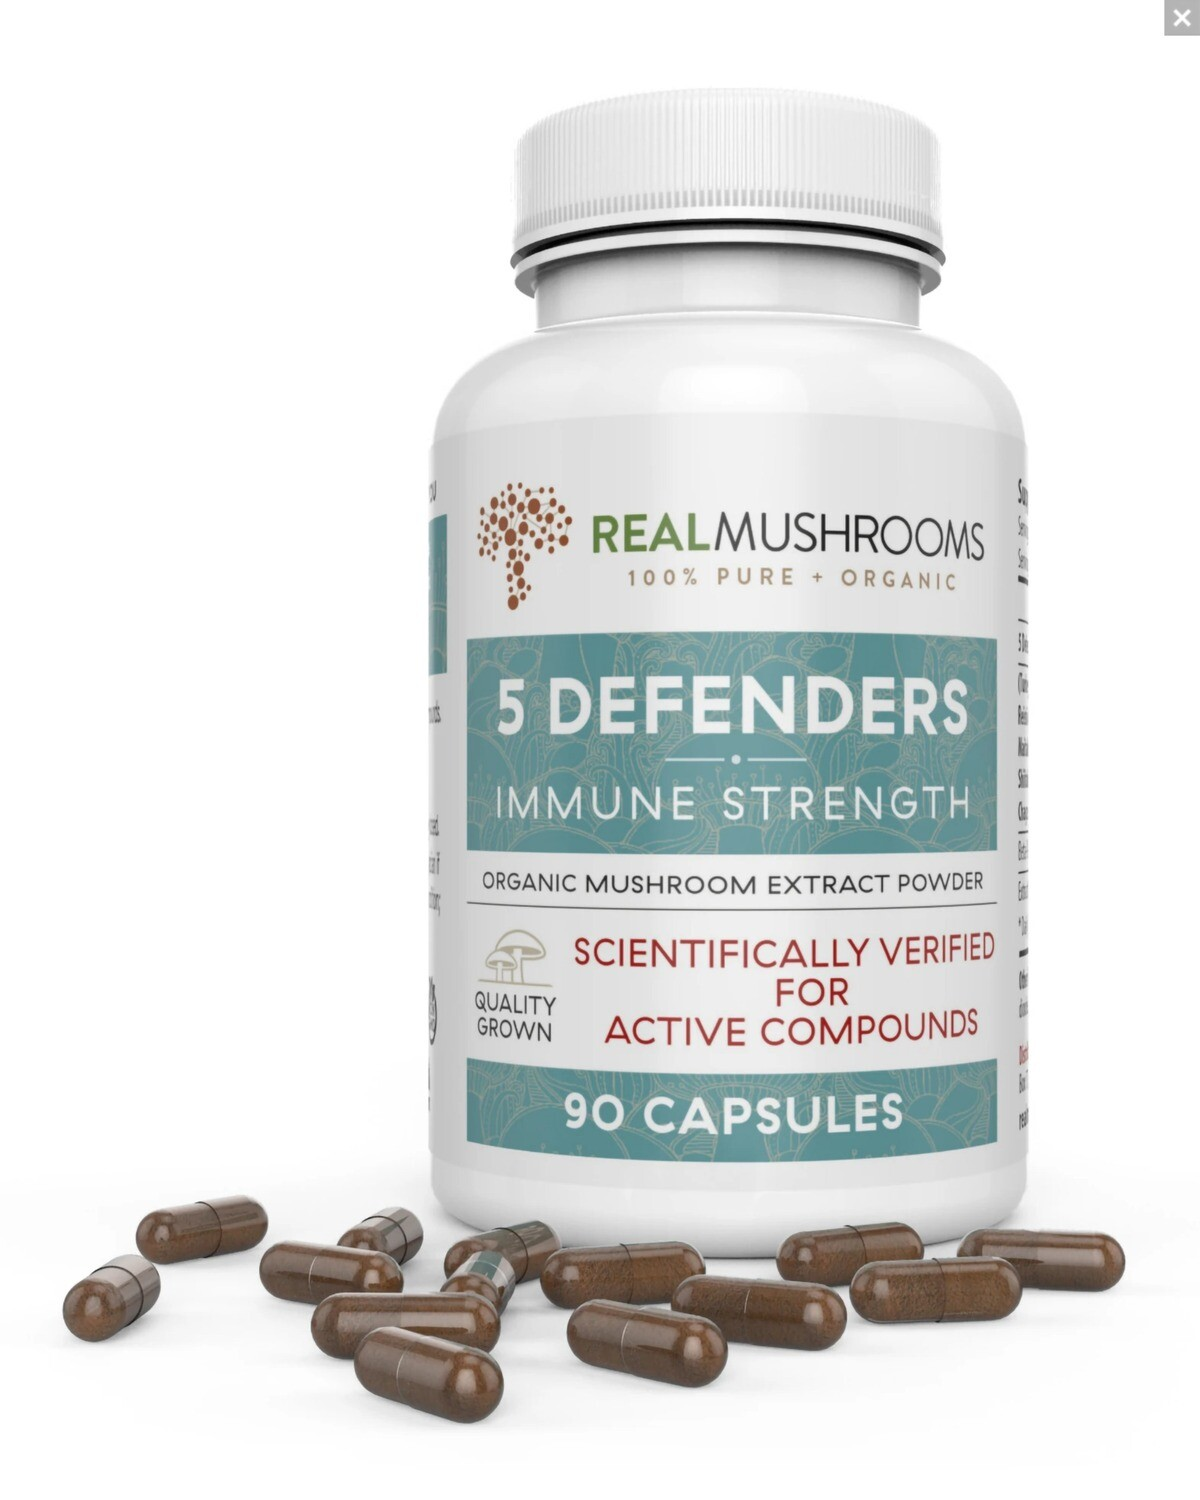 5 Defenders 90 Capsules ,Real Mushrooms